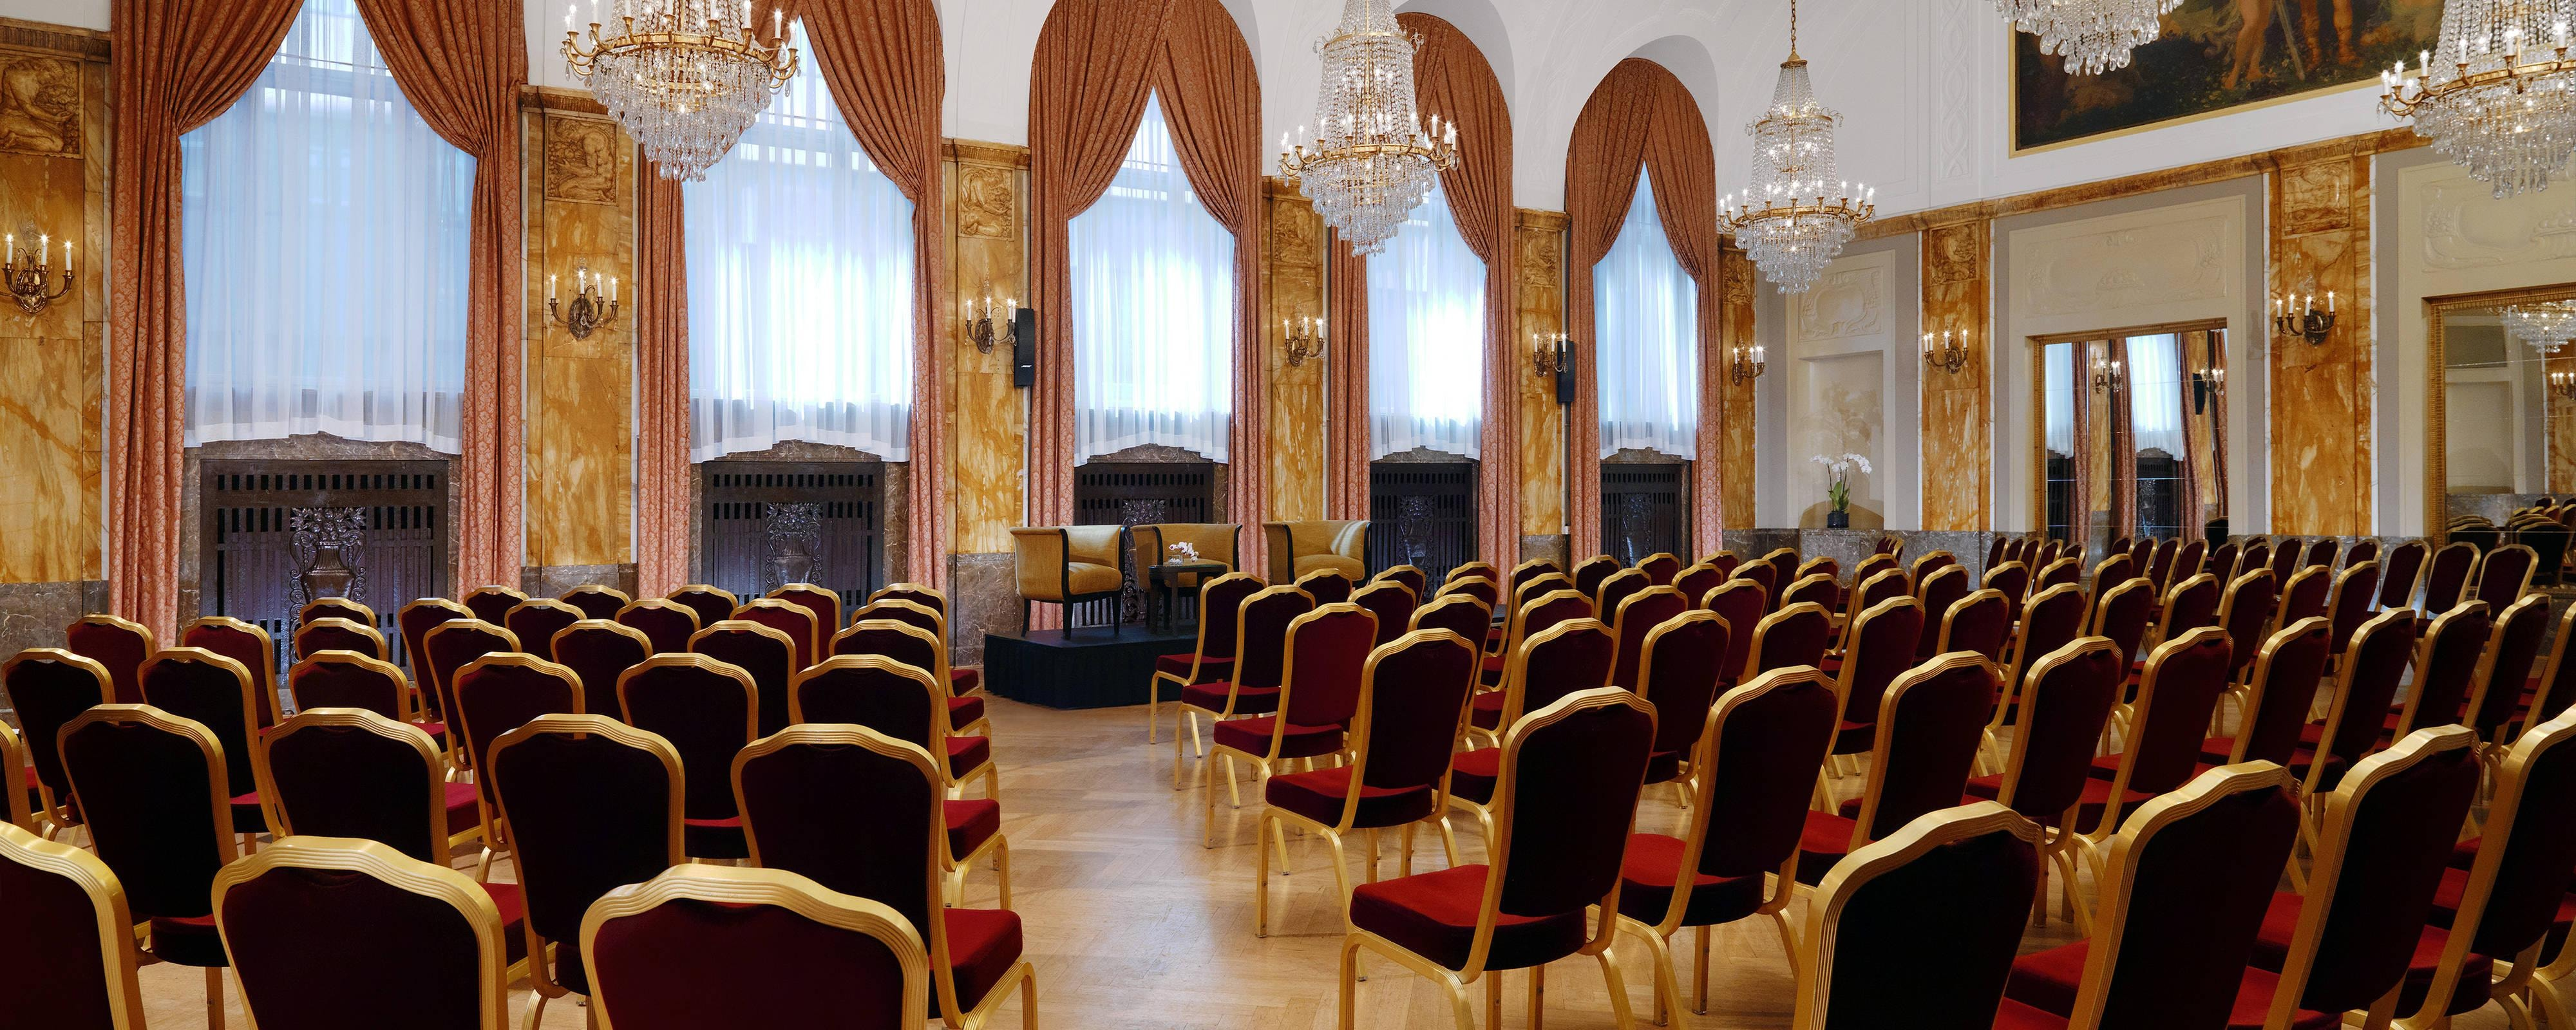 Richard-Wagner-Saal